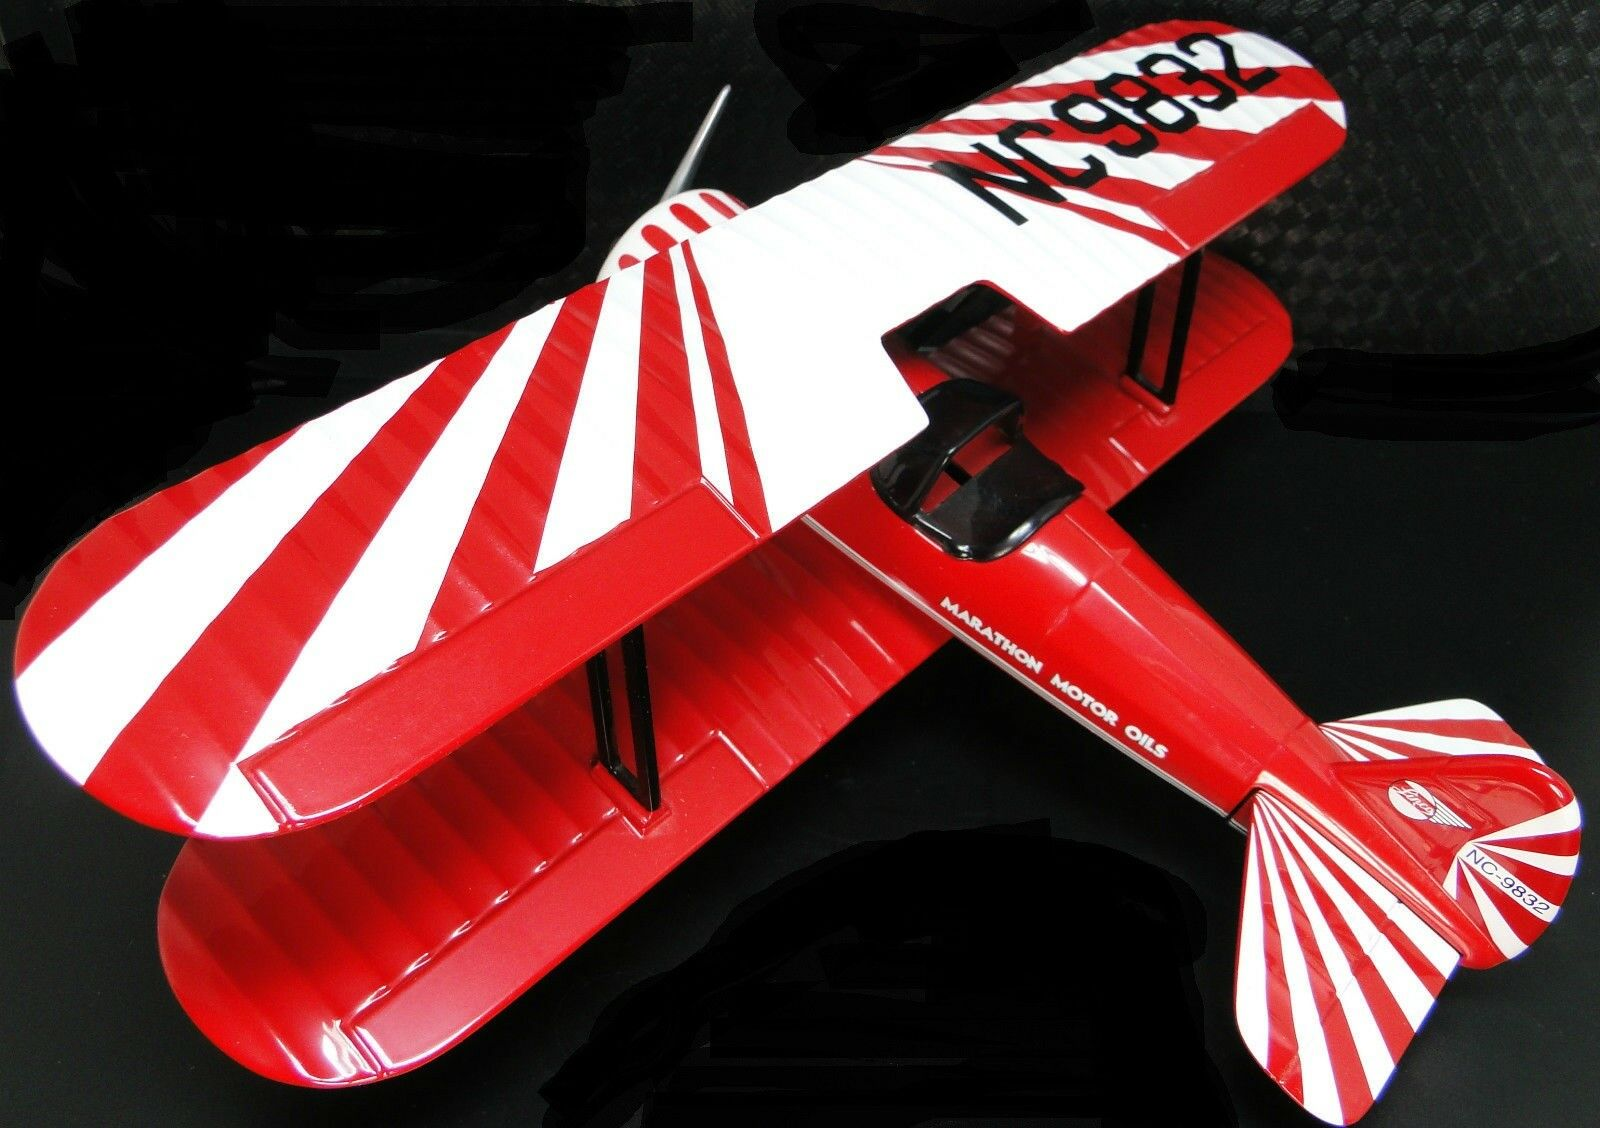 Model Airplane Aircraft Fighter US Diecast WW1 Military Armor 1 48 Carousel Red